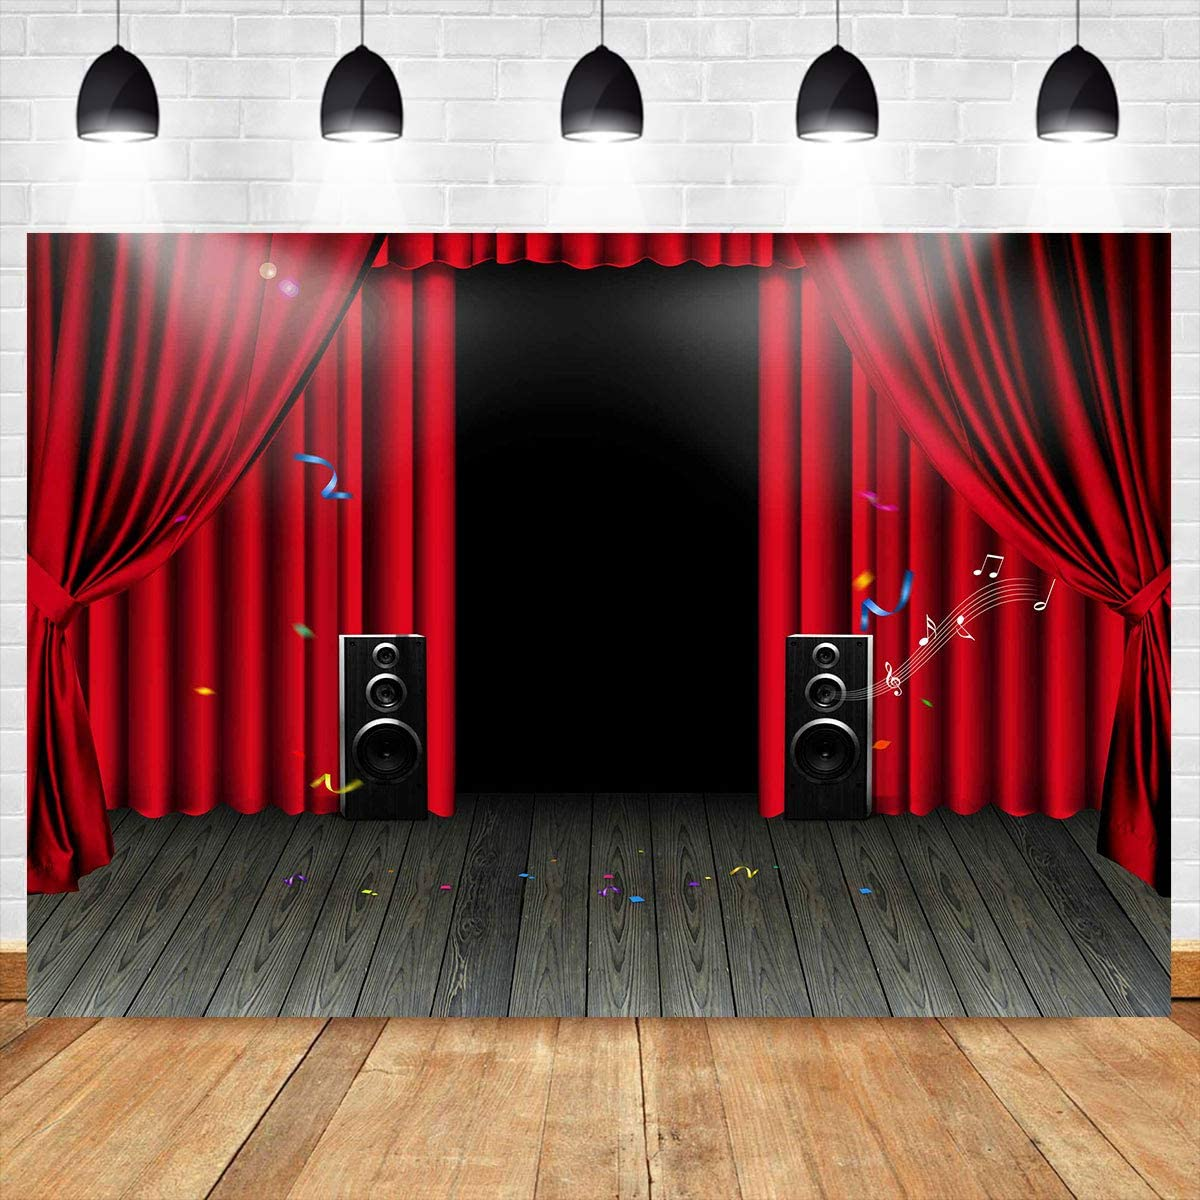 New Stage Curtain Background FHZON 7x5ft Golden Rope on Red Cloth Photograph Background for Theater Movie Theater Club Studio Party Photo Booth Props 489